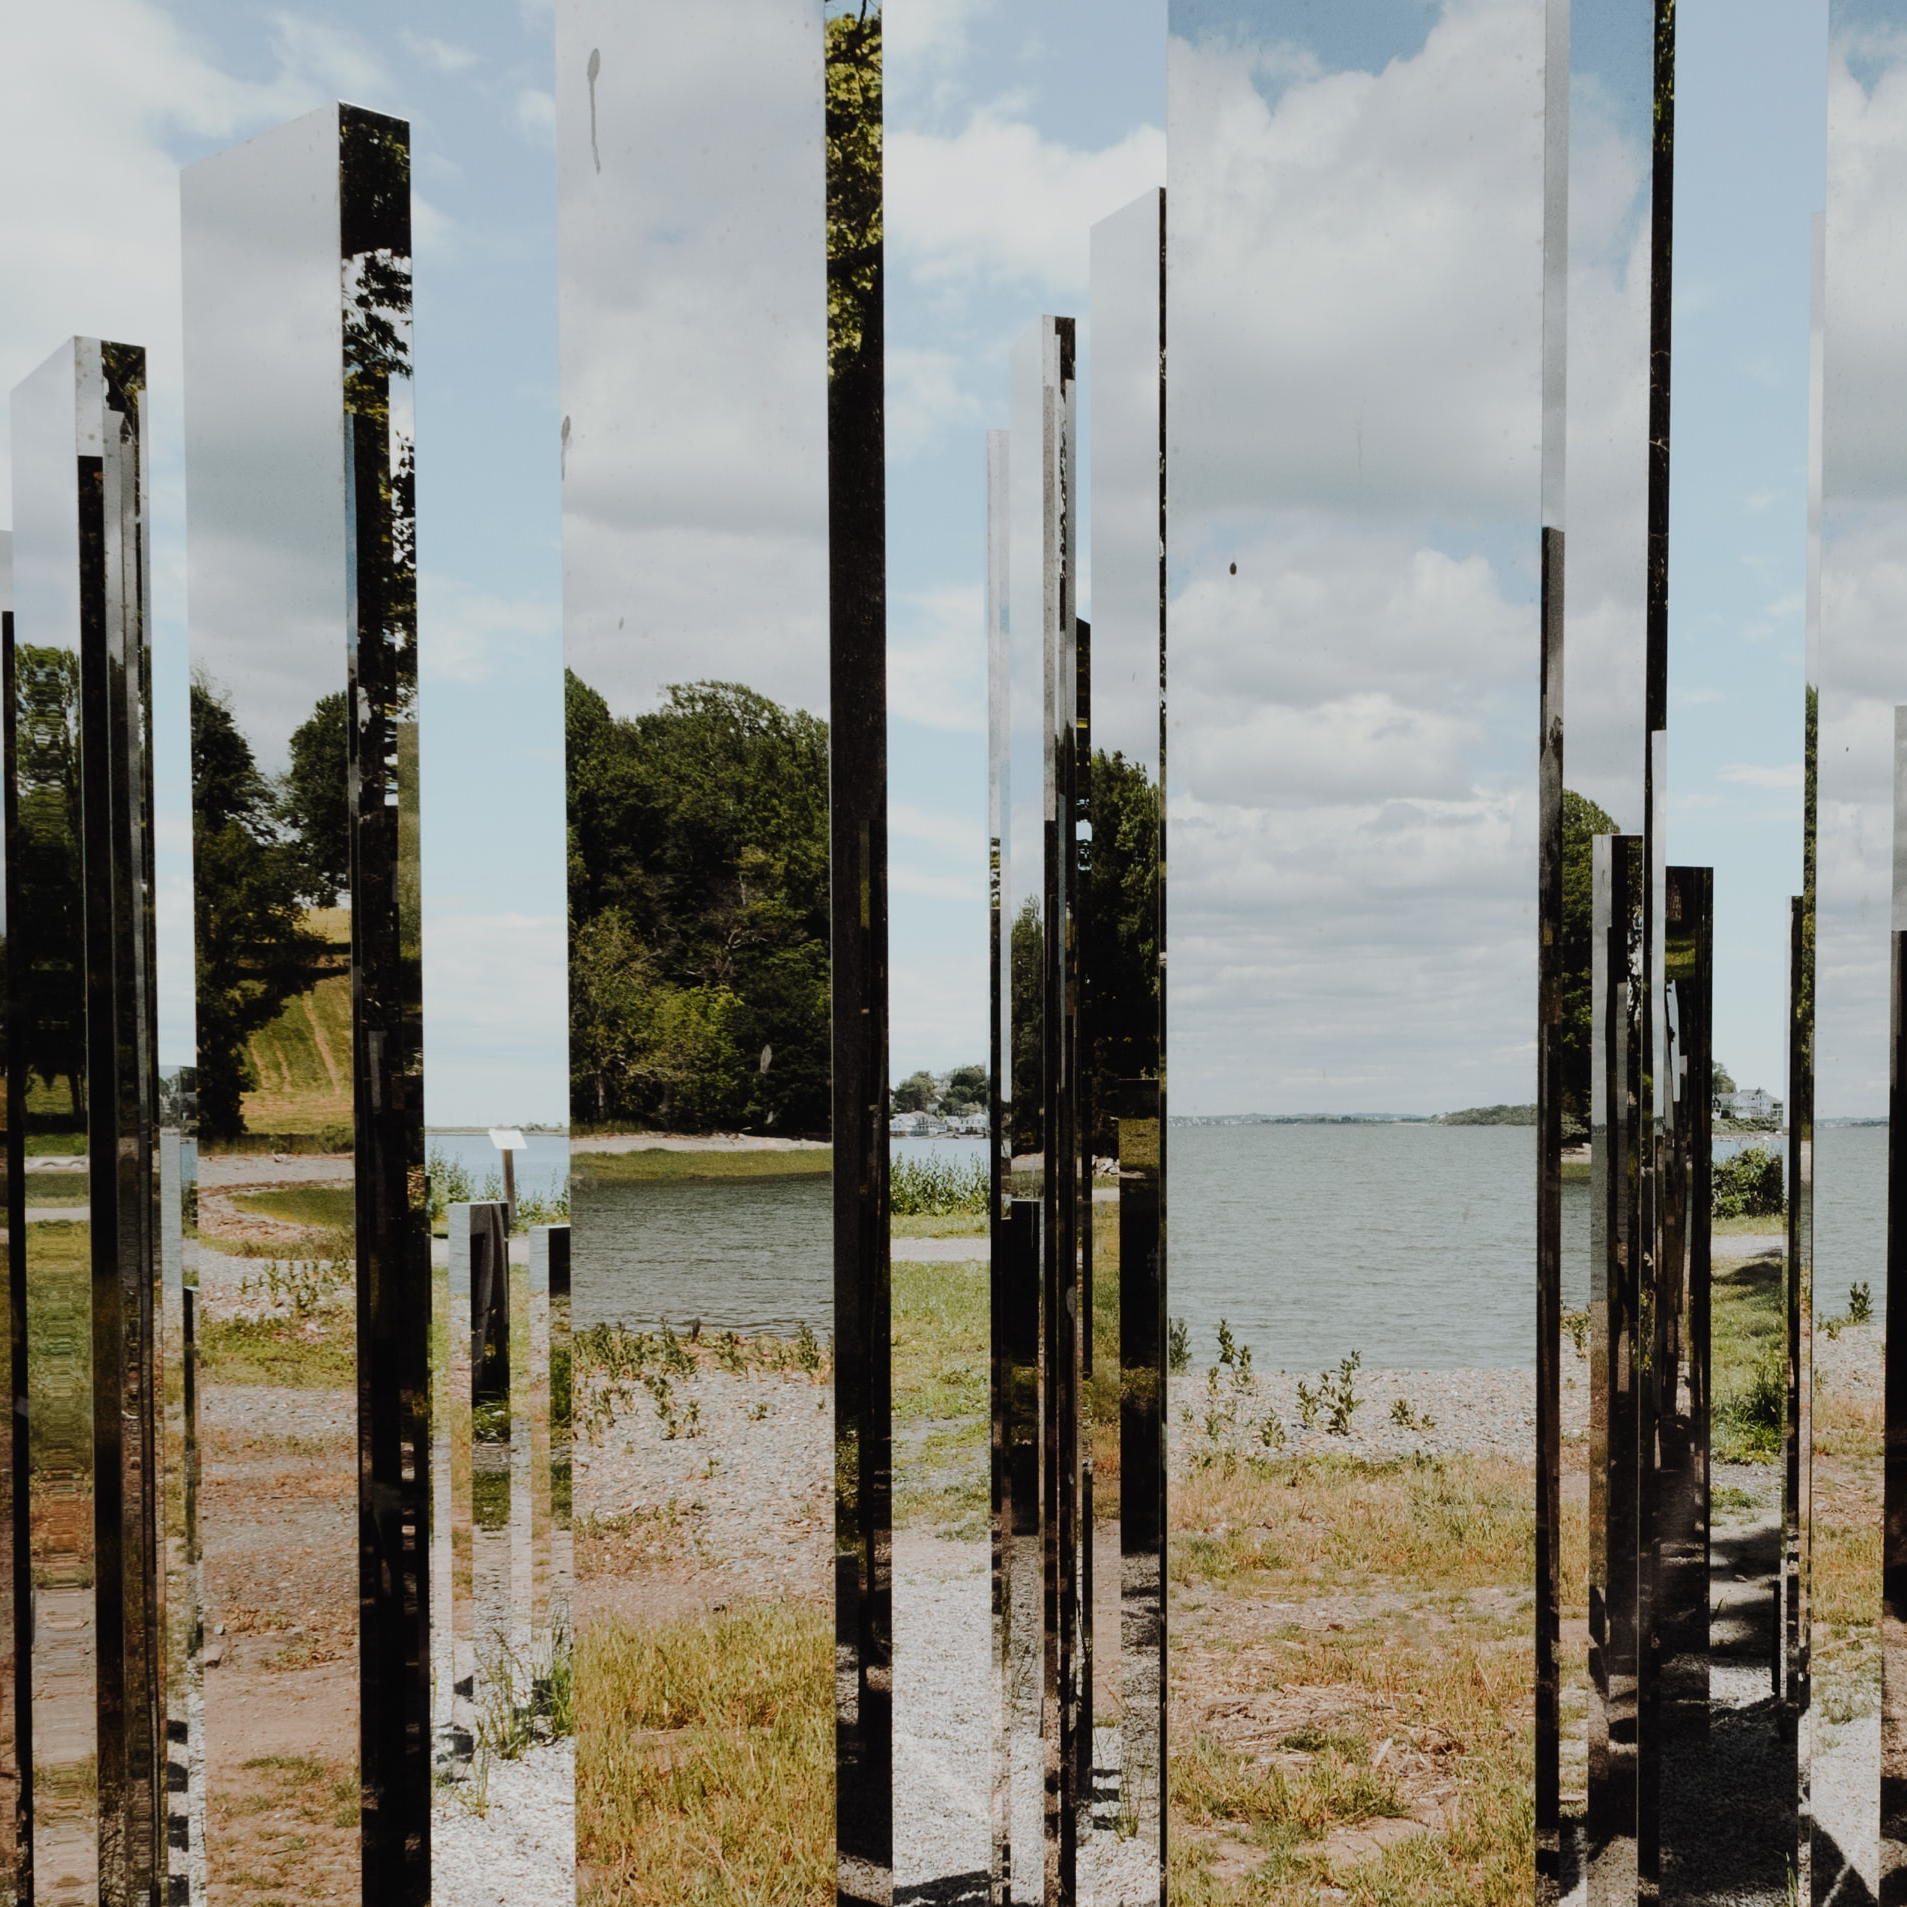 Mirrored art installation